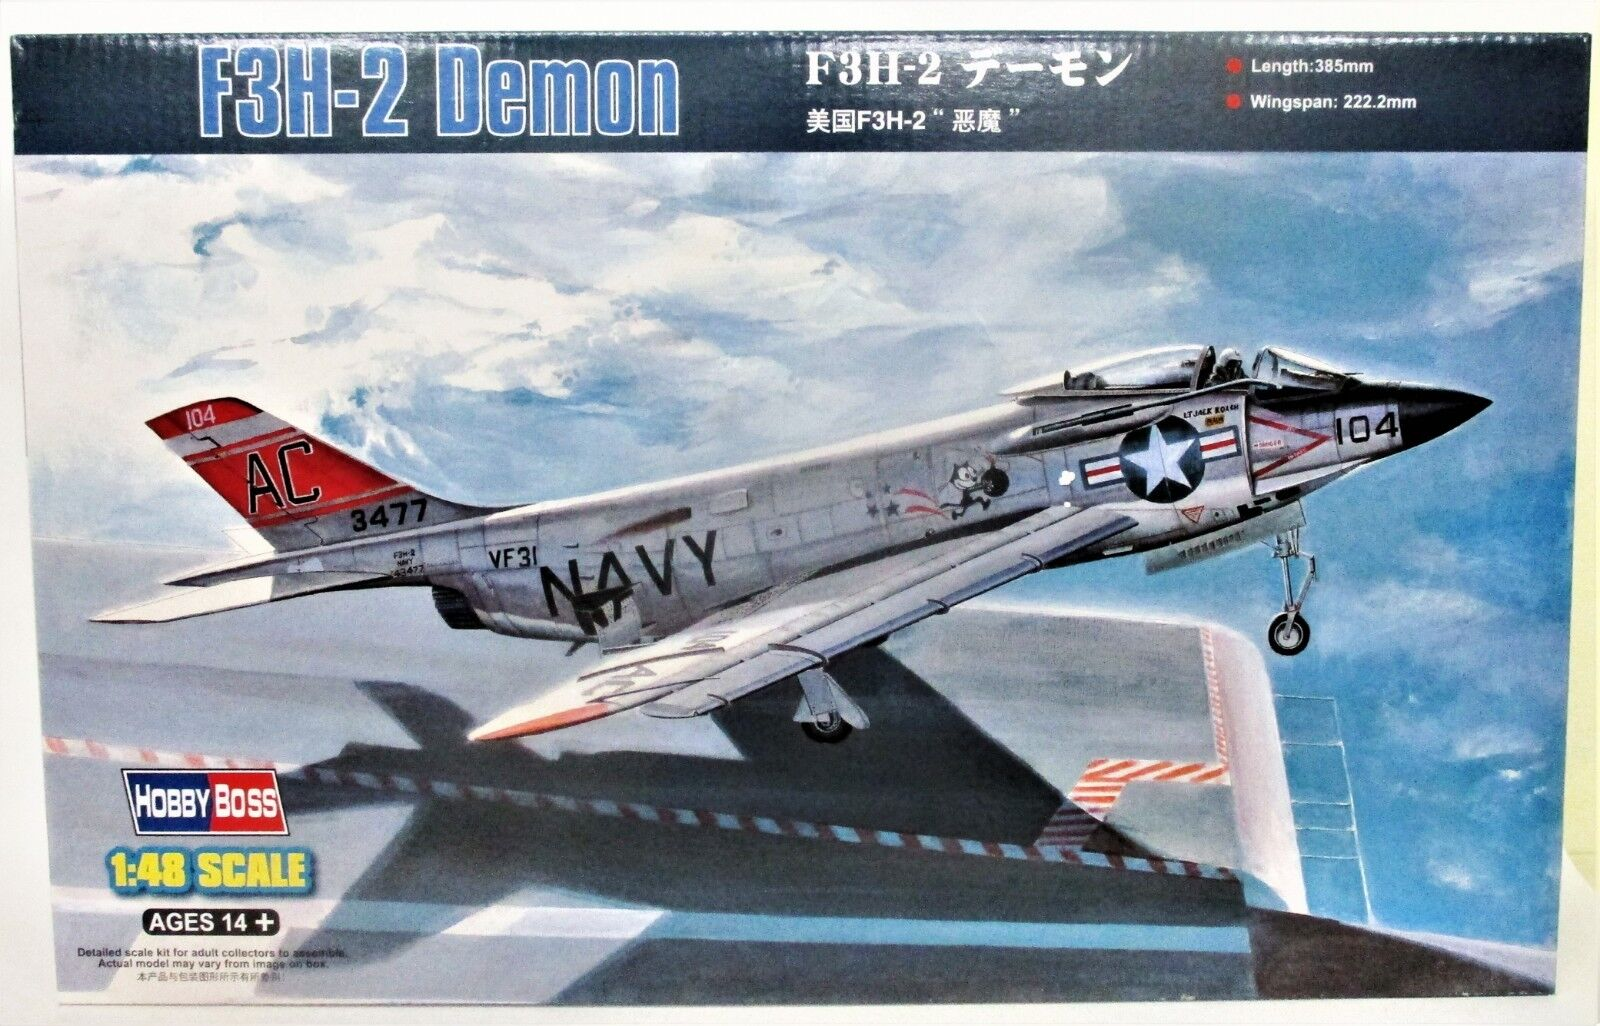 80364 Trumpeter Static Demon Carrier-borne Aircraft American F3H-2 Model 1 48